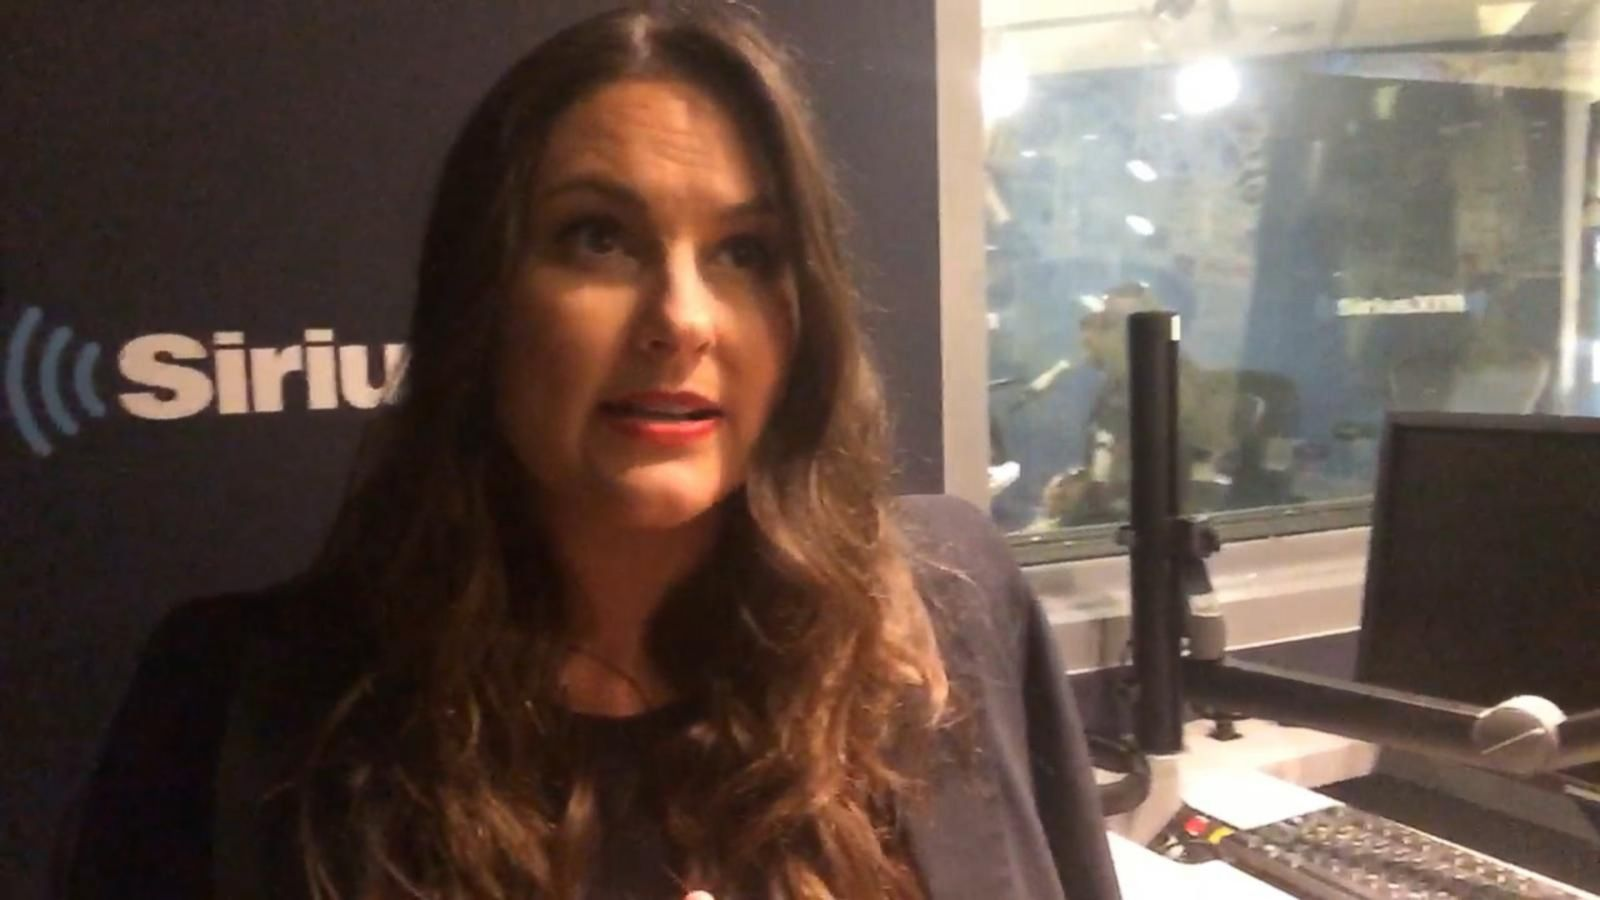 VIDEO: Sirius XM Radio Host Taylor Strecker on Why Women Need to Stop Labeling Each Other